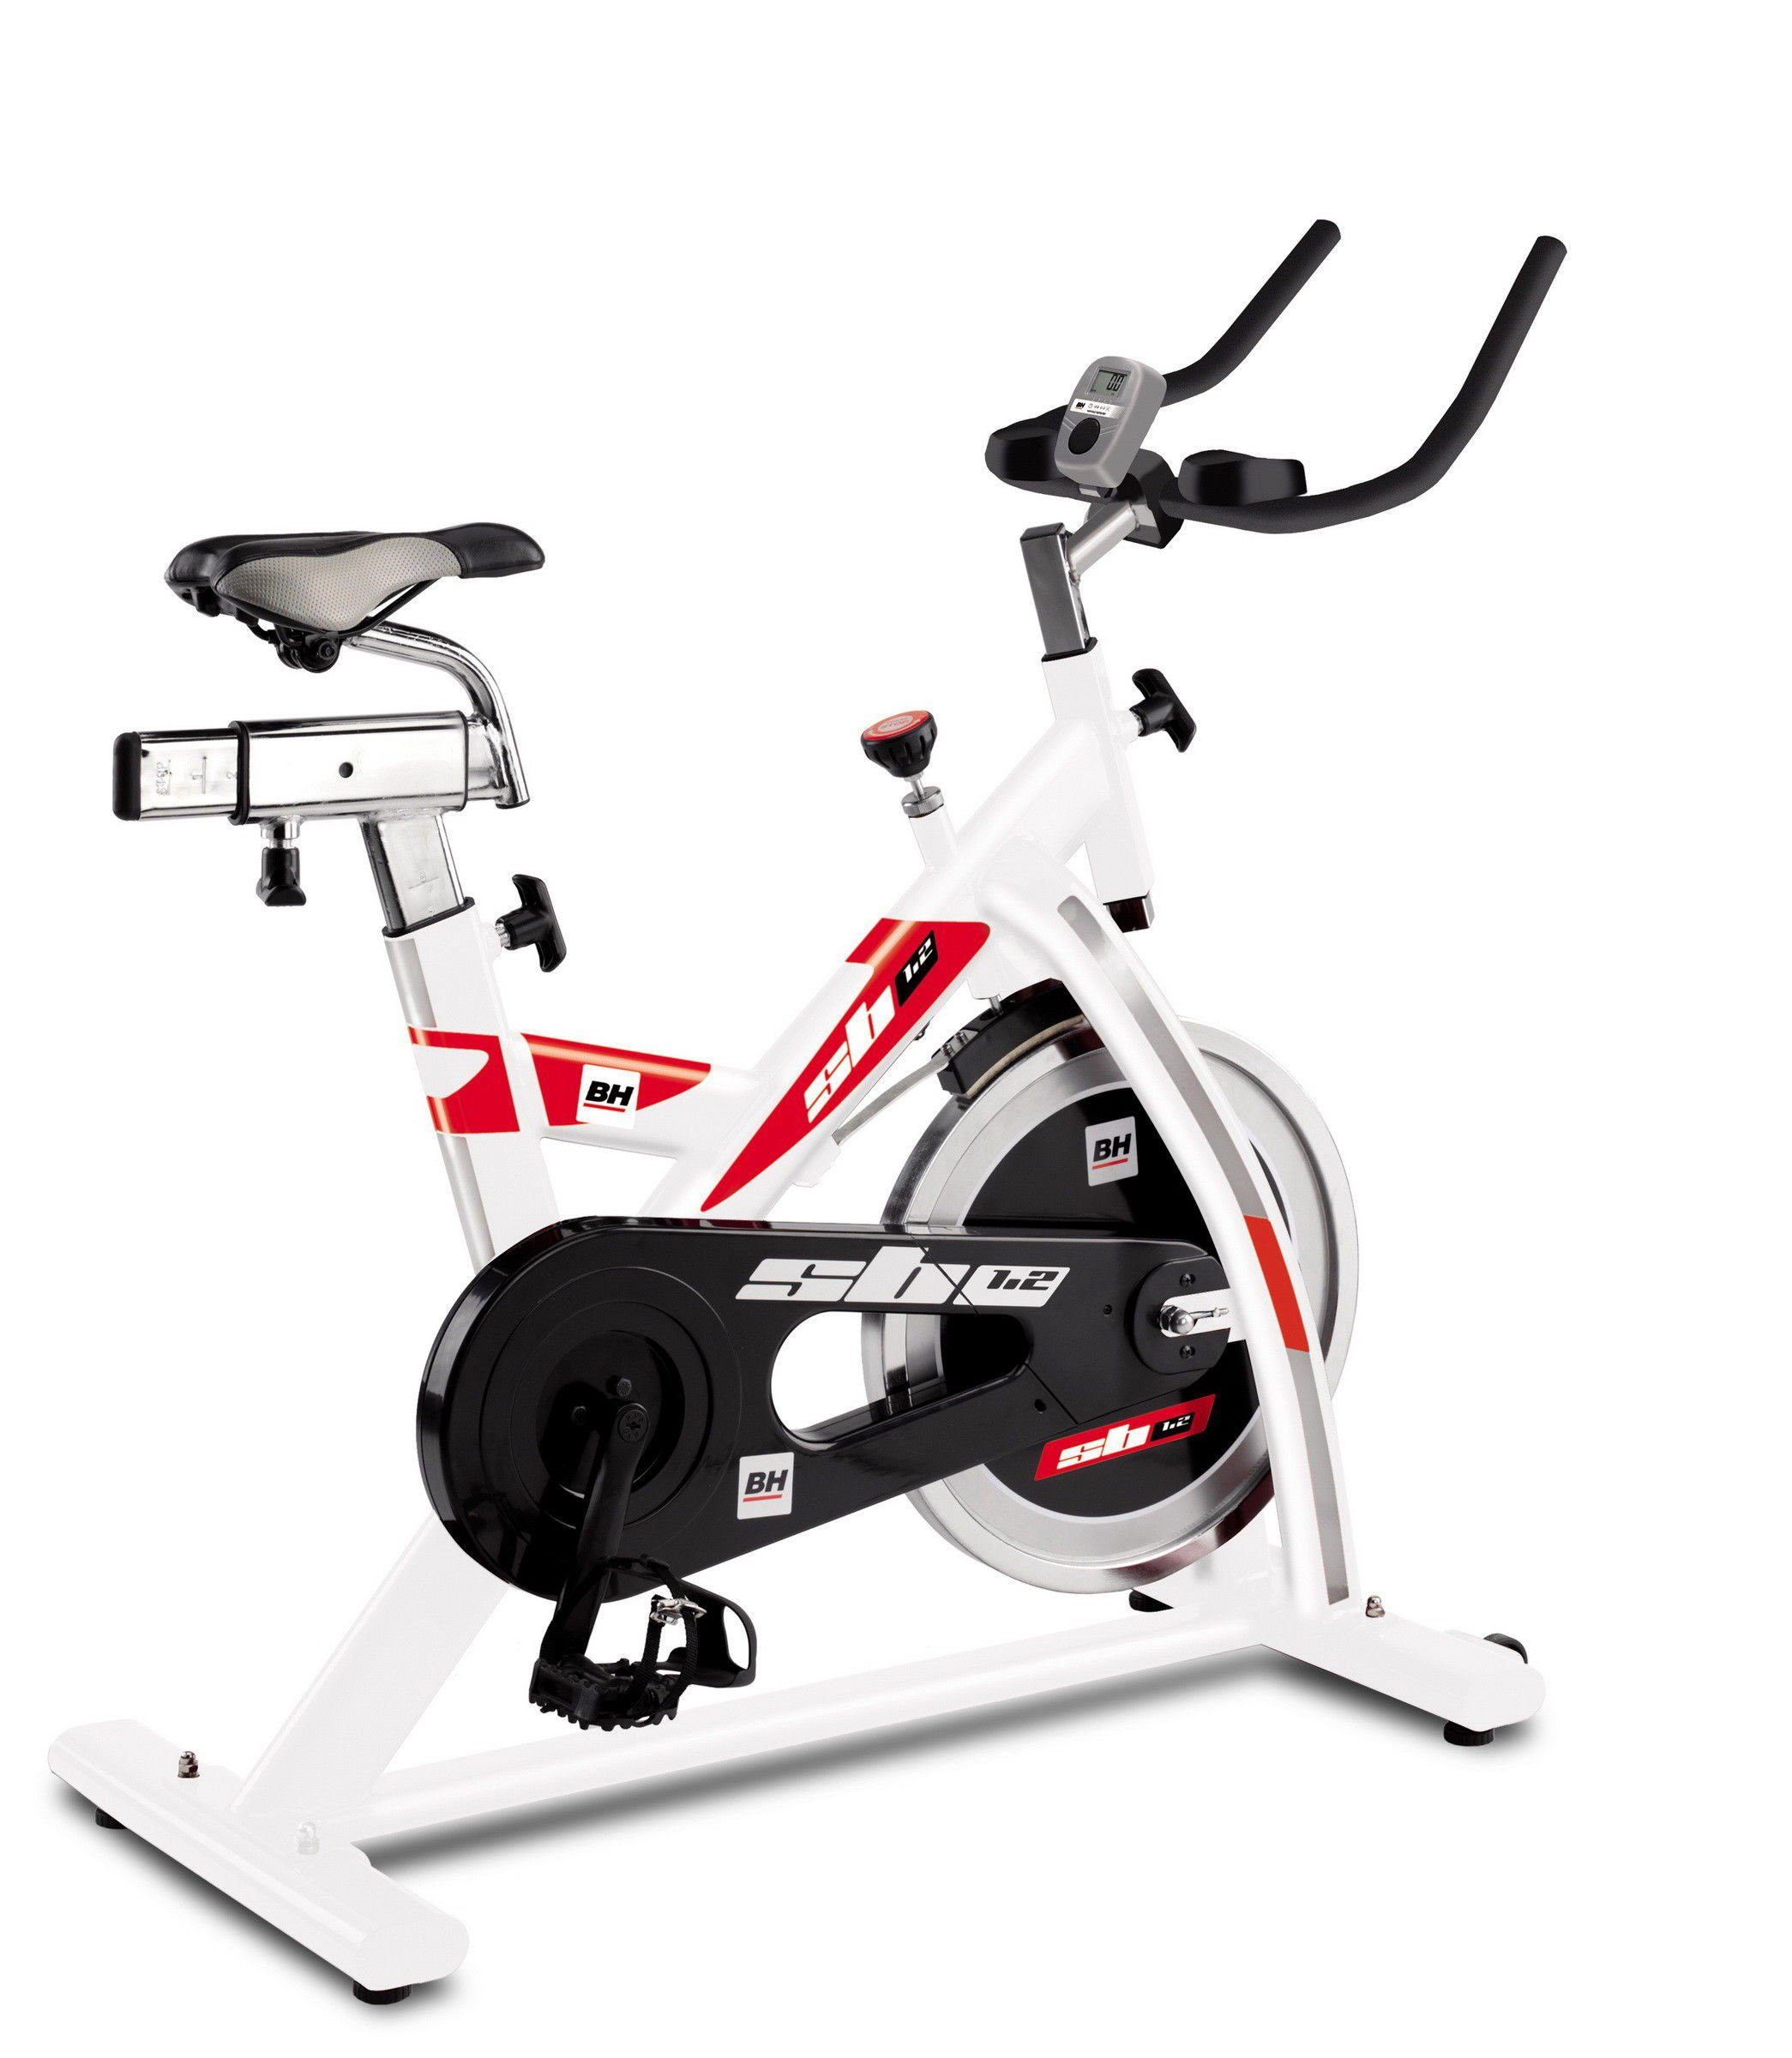 Rower spinningowy SB1.2 - BH Fitness